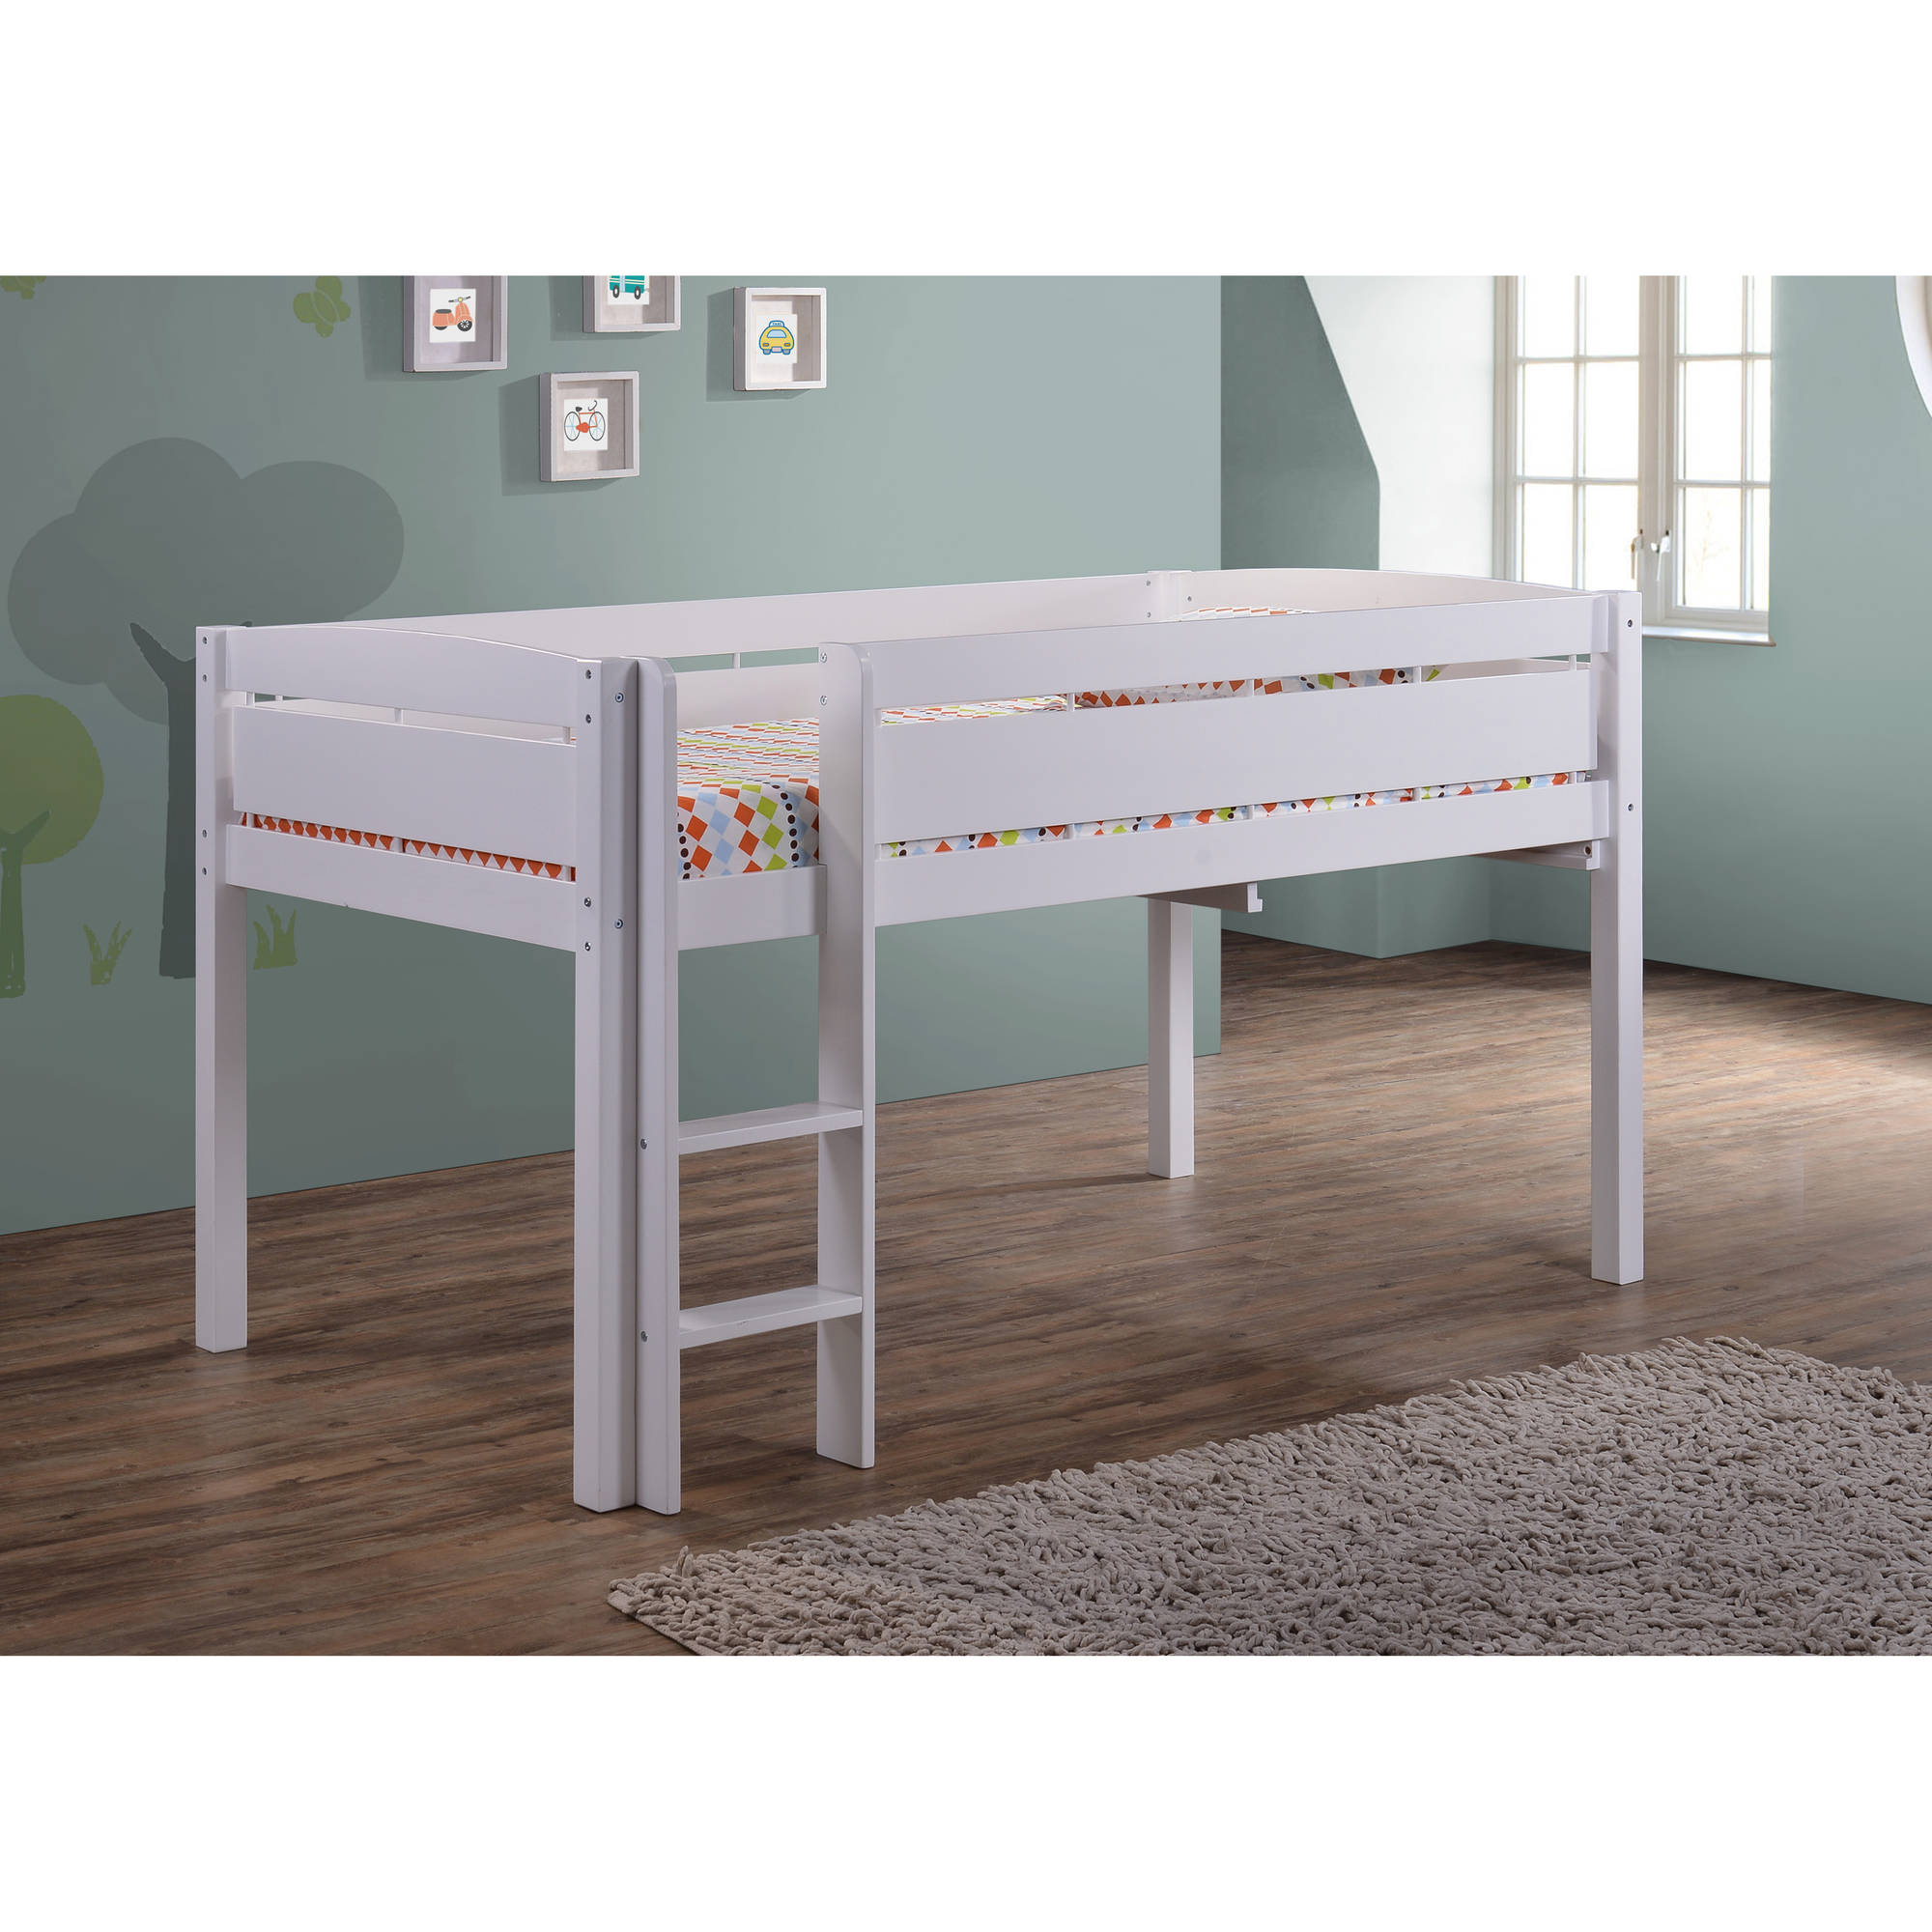 Details About Canwood Whistler Junior Loft Bed White